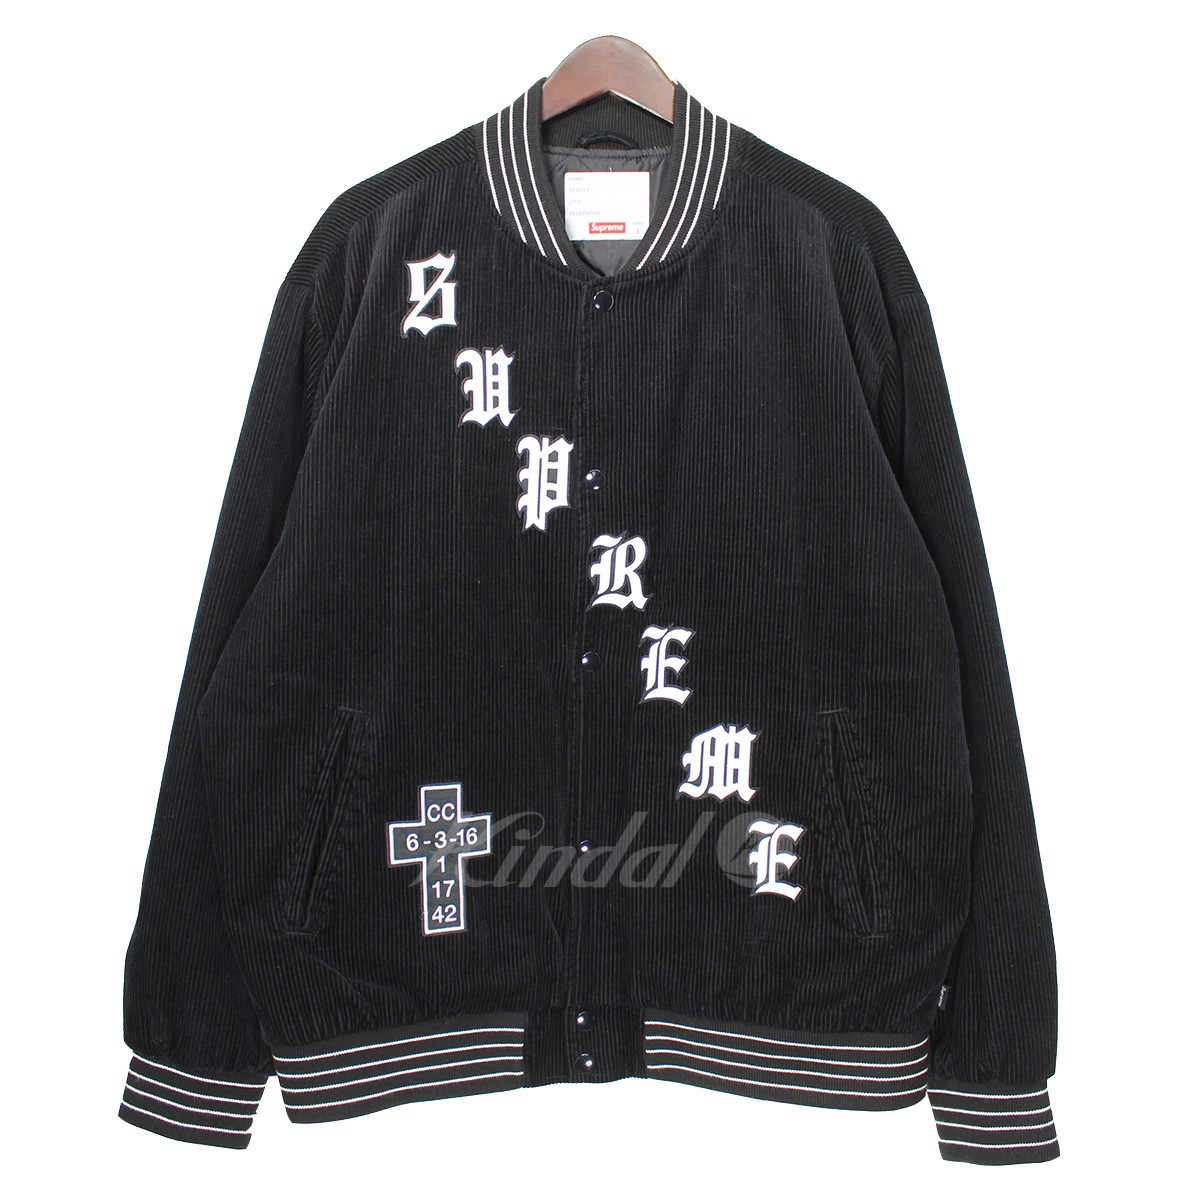 【中古】SUPREME 18SS Old English Corduroy Varsity Jacket ロゴジャケット 【送料無料】 【002768】 【KIND1550】